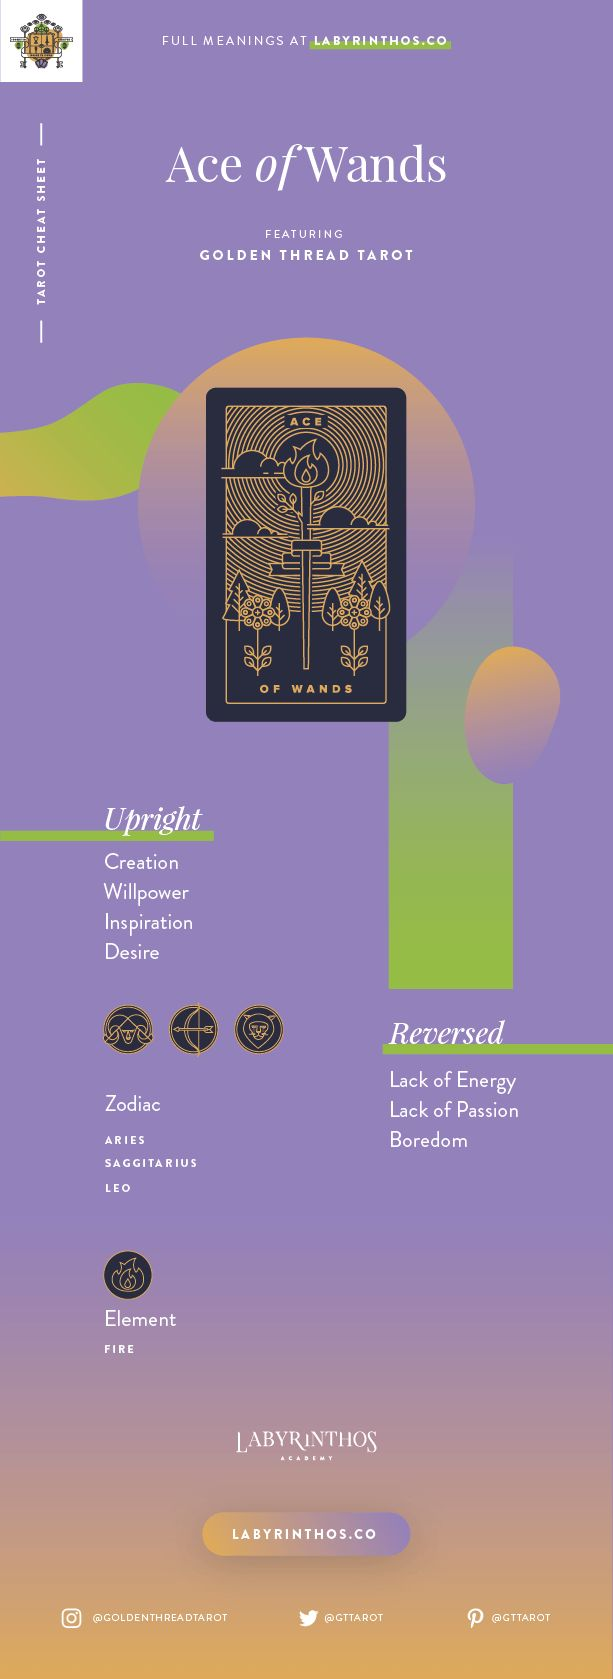 Ace of Wands Meaning - Tarot Card Meanings Cheat Sheet. Art from Golden Thread Tarot.